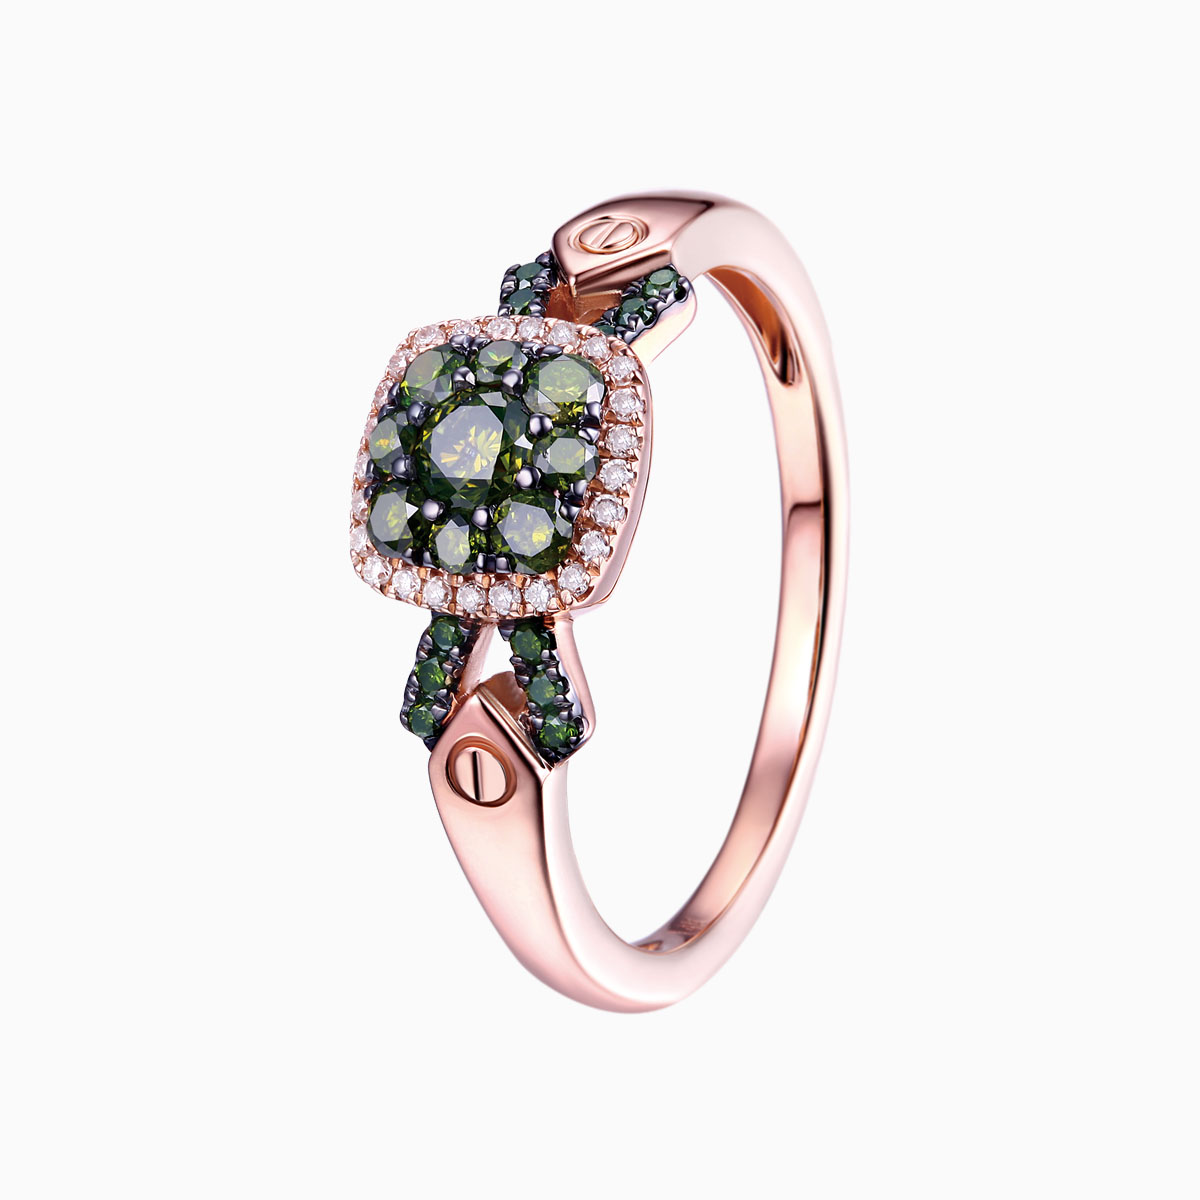 R17604GRN- 14K Rose Gold Diamond Ring, 0.52 TCW